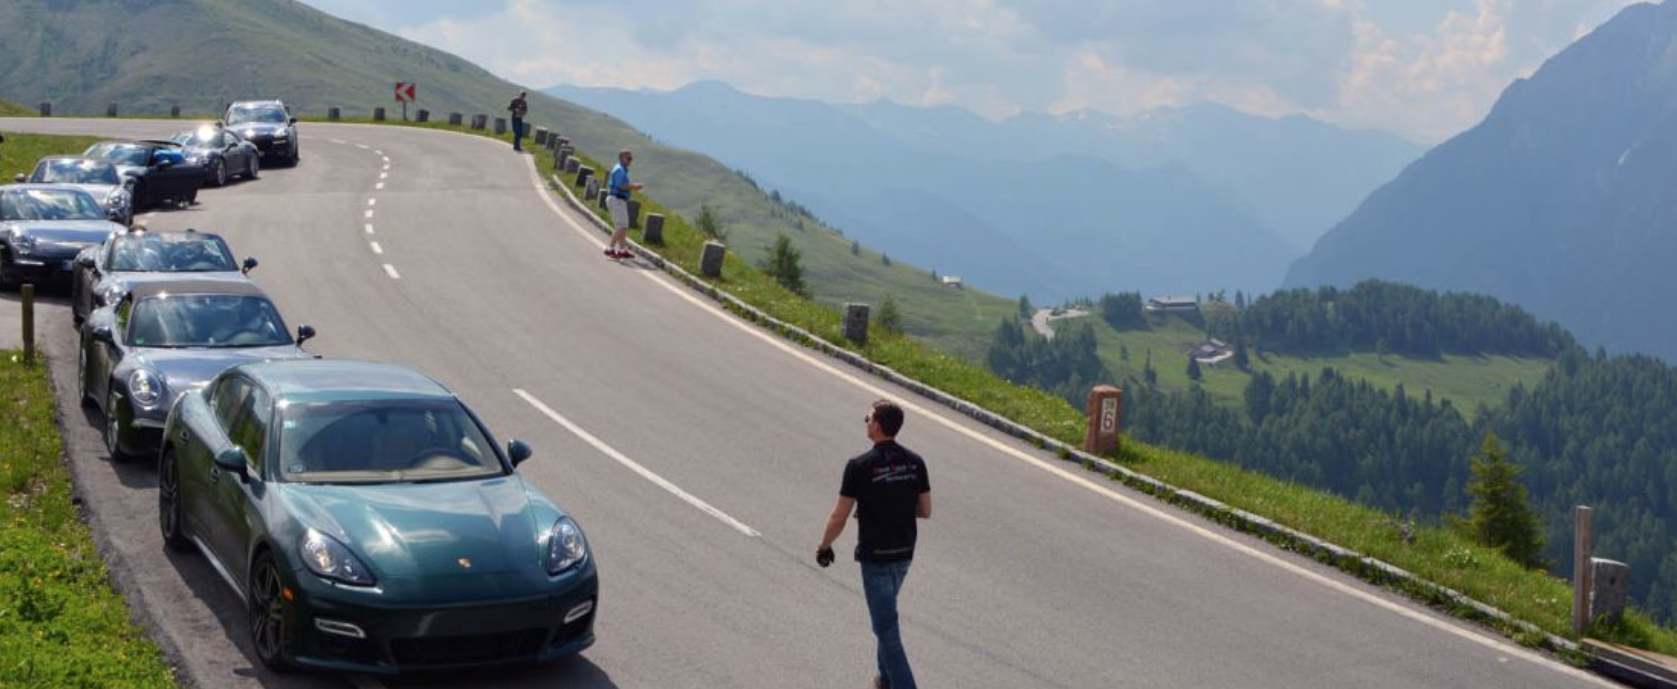 See The World In A Porsche Driving Tour Premier